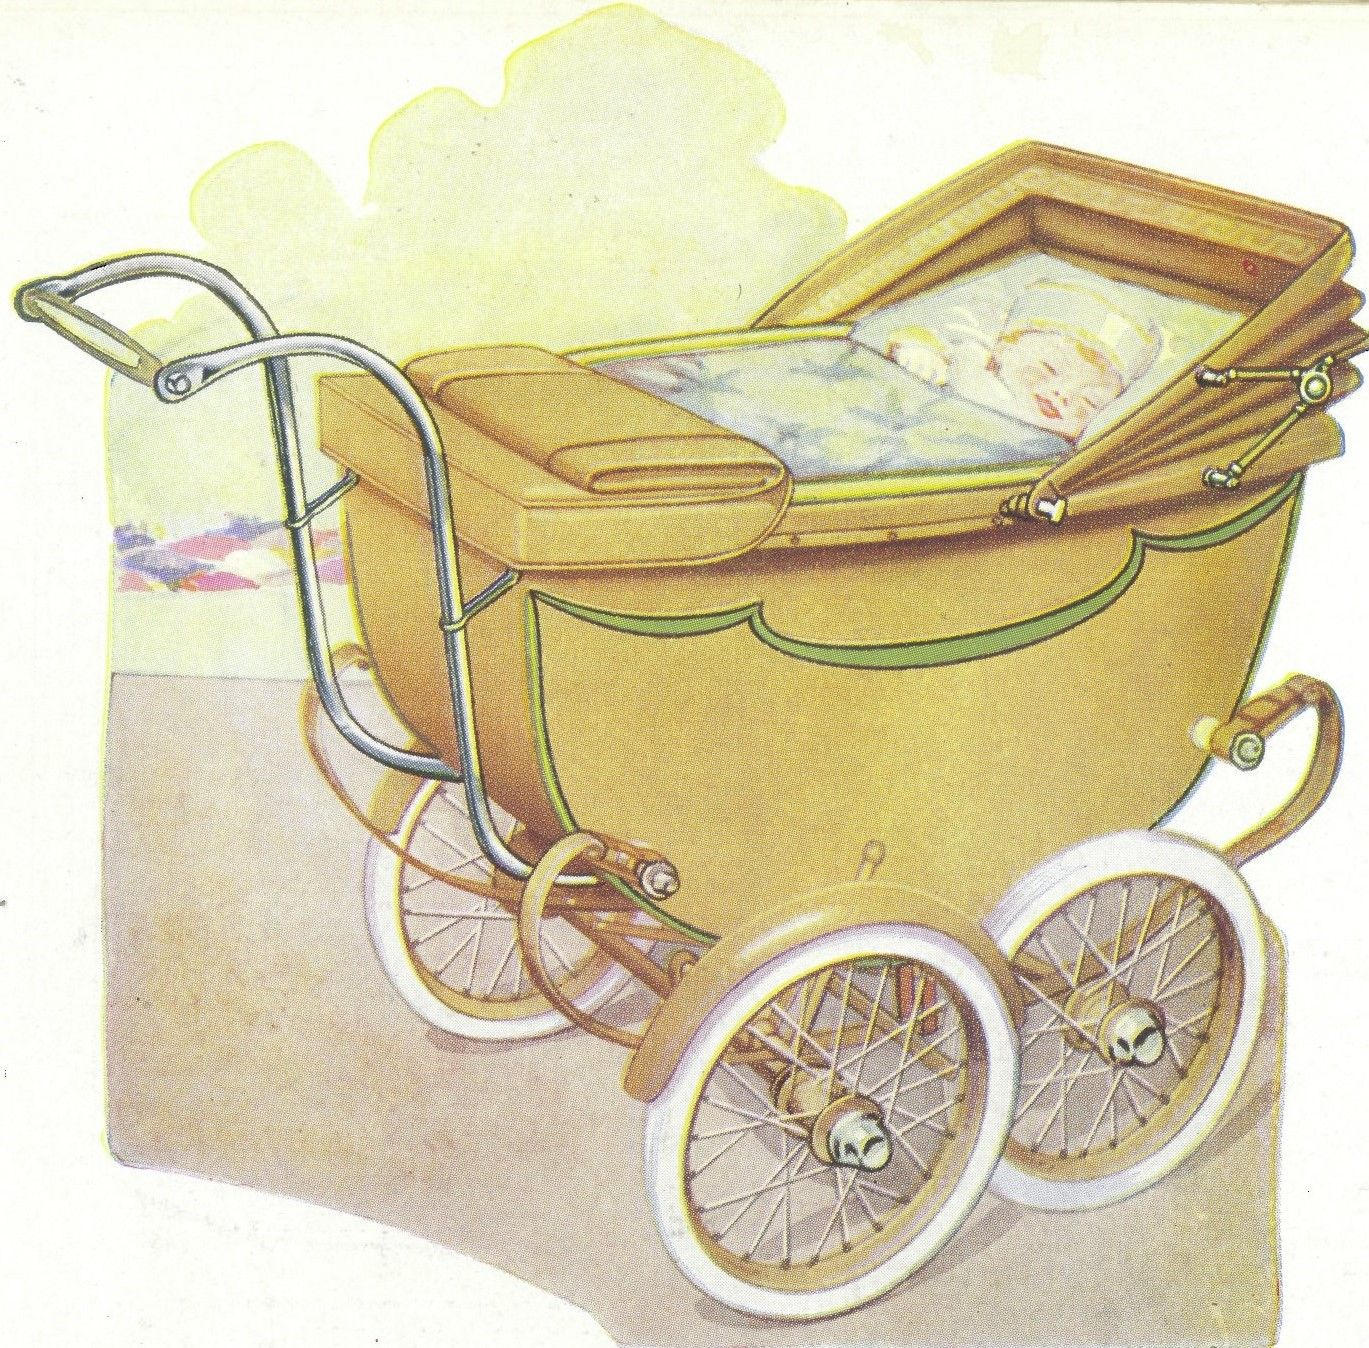 This wonderful Silver Cross pram appeared in one of our brochures from the 1930s. It's shown in Champagne with a Liberty Green trim.